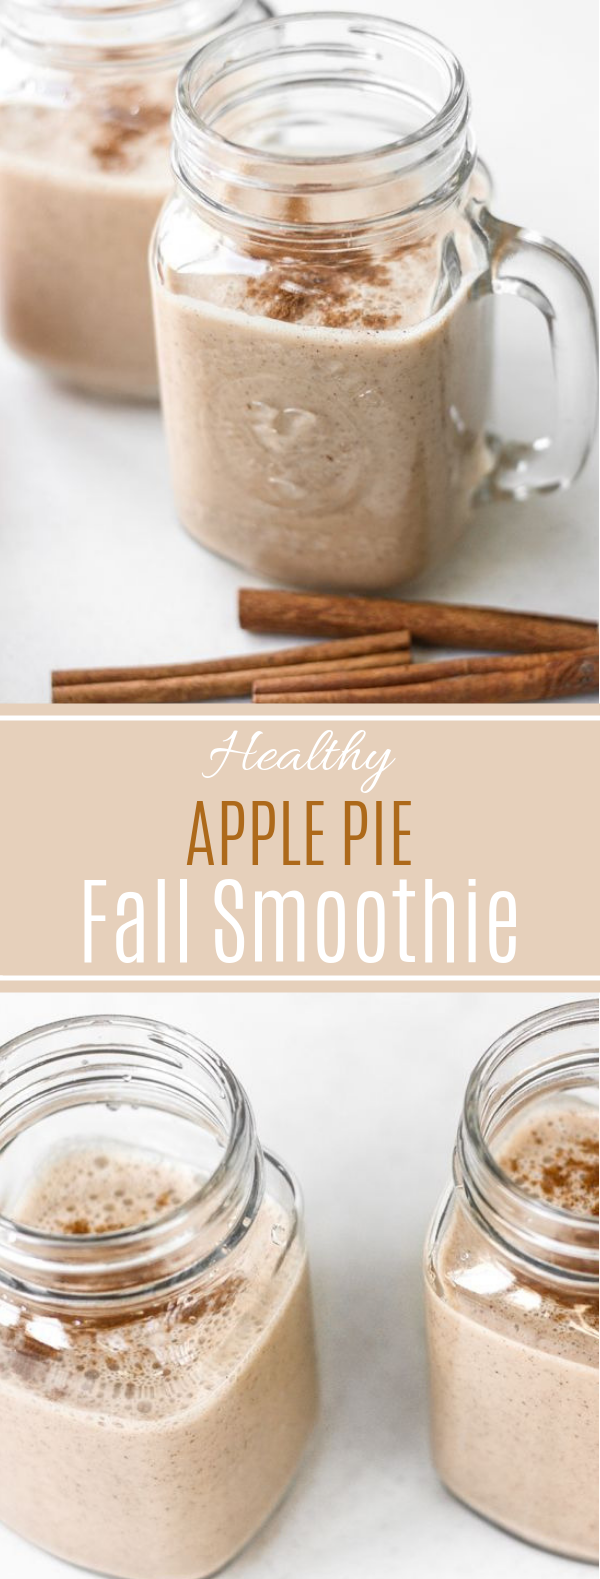 Healthy Apple Pie Fall Smoothie #healthy #drink